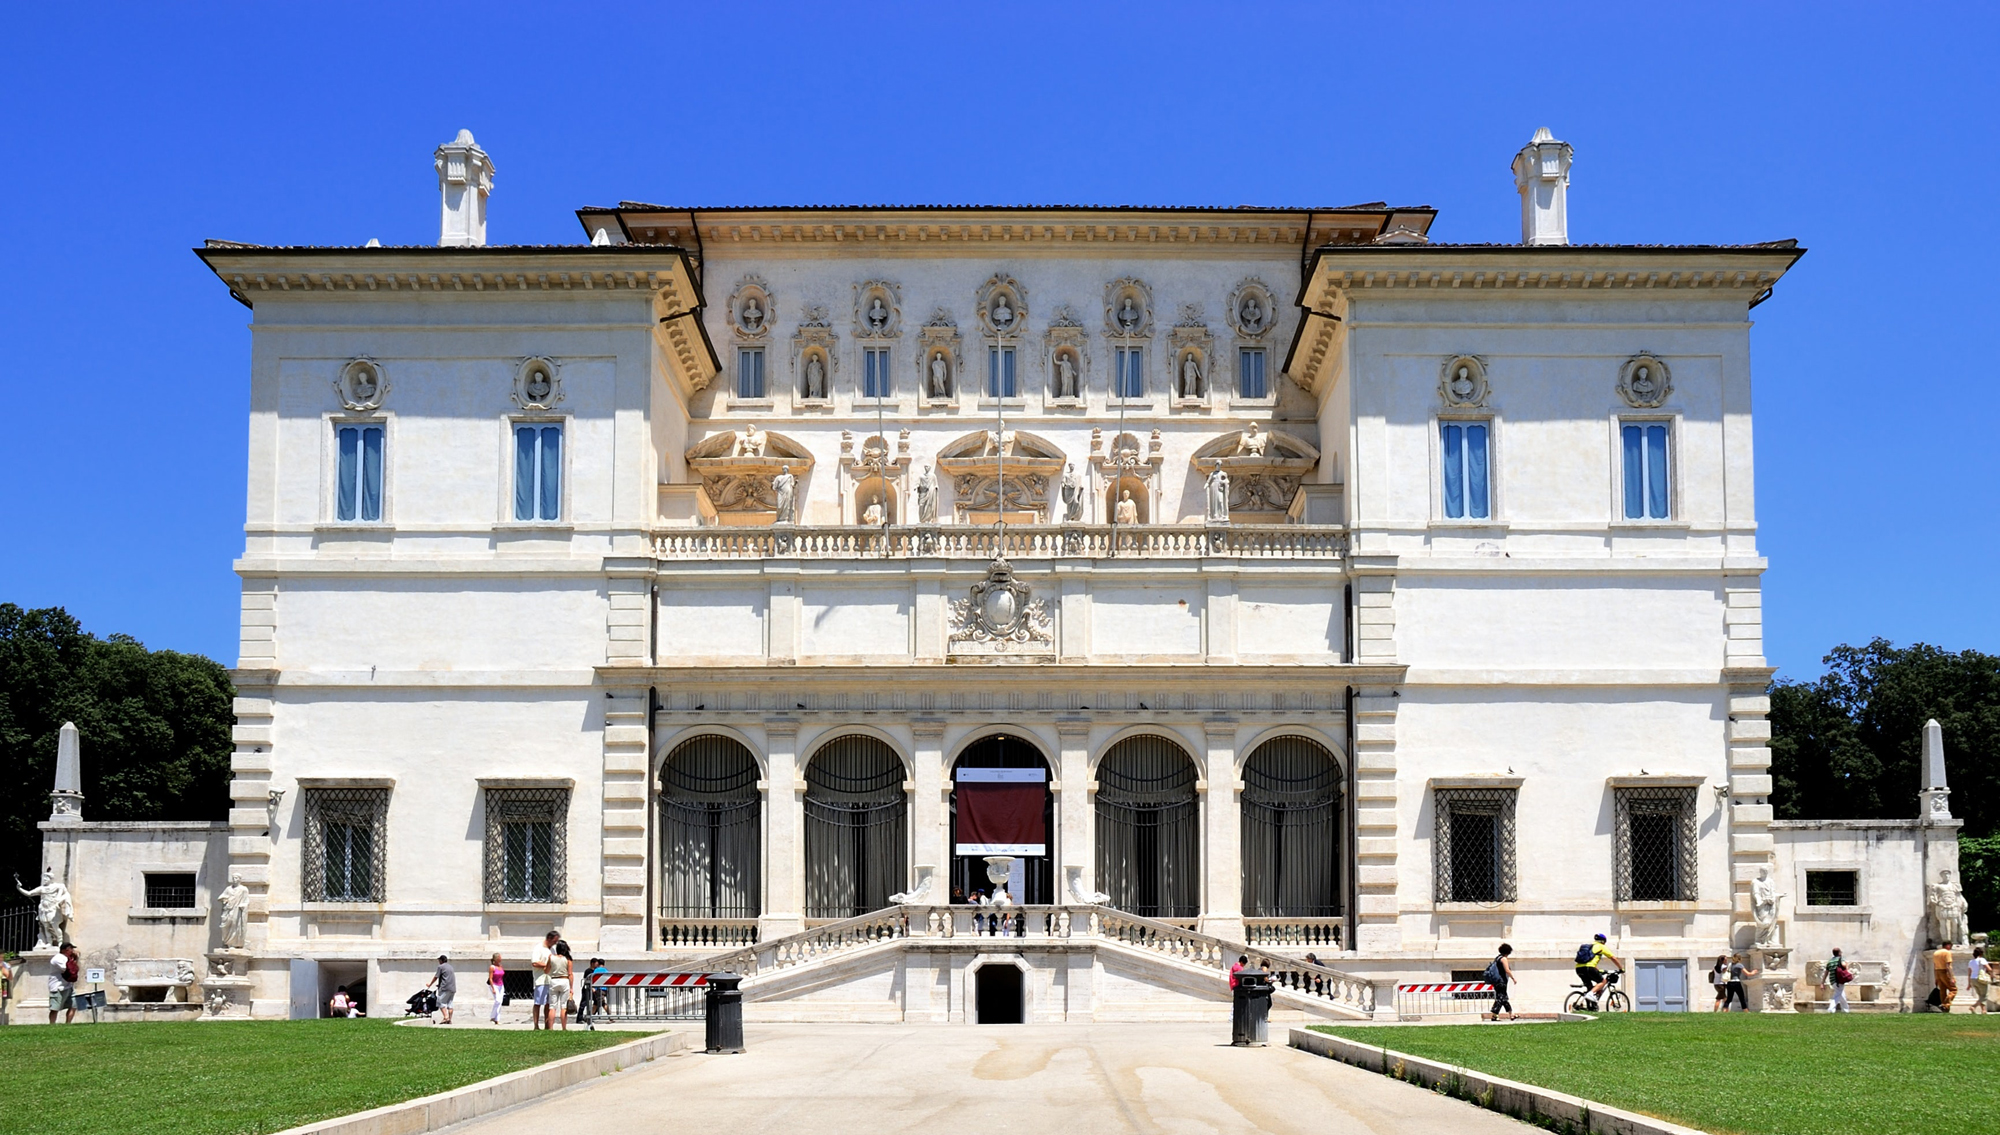 Galleria Borghese Tour with a private guide